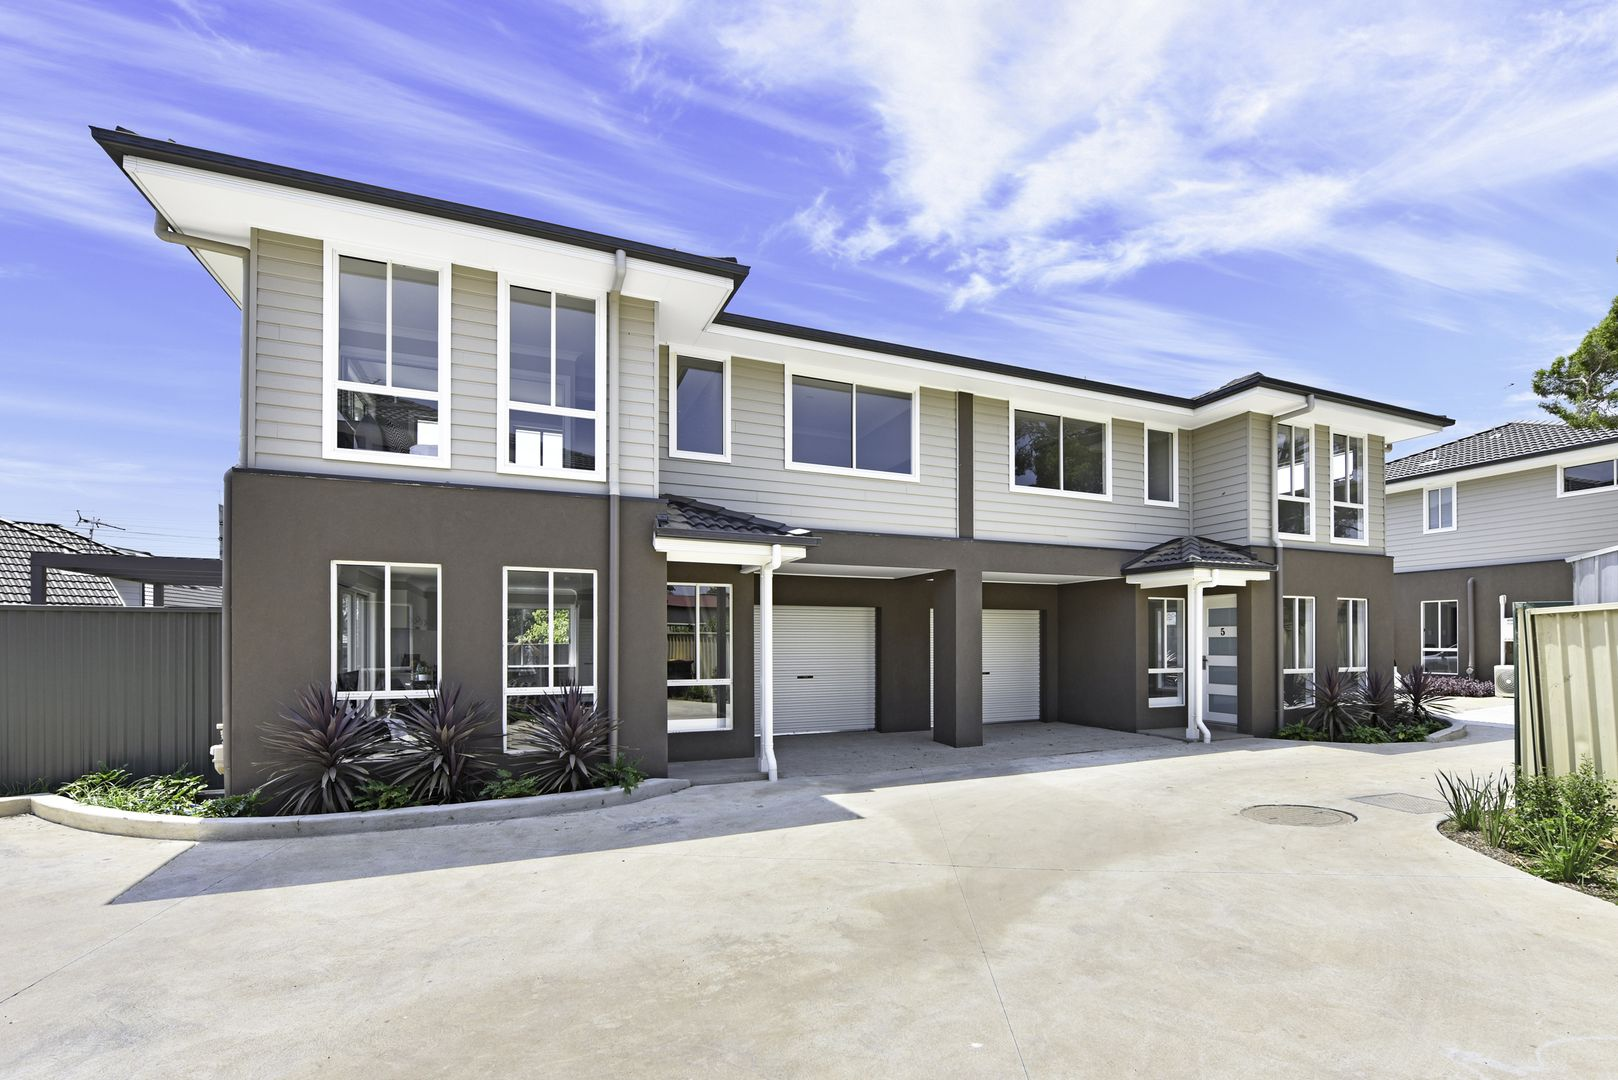 6/5 Adelaide Street, Oxley Park NSW 2760, Image 0